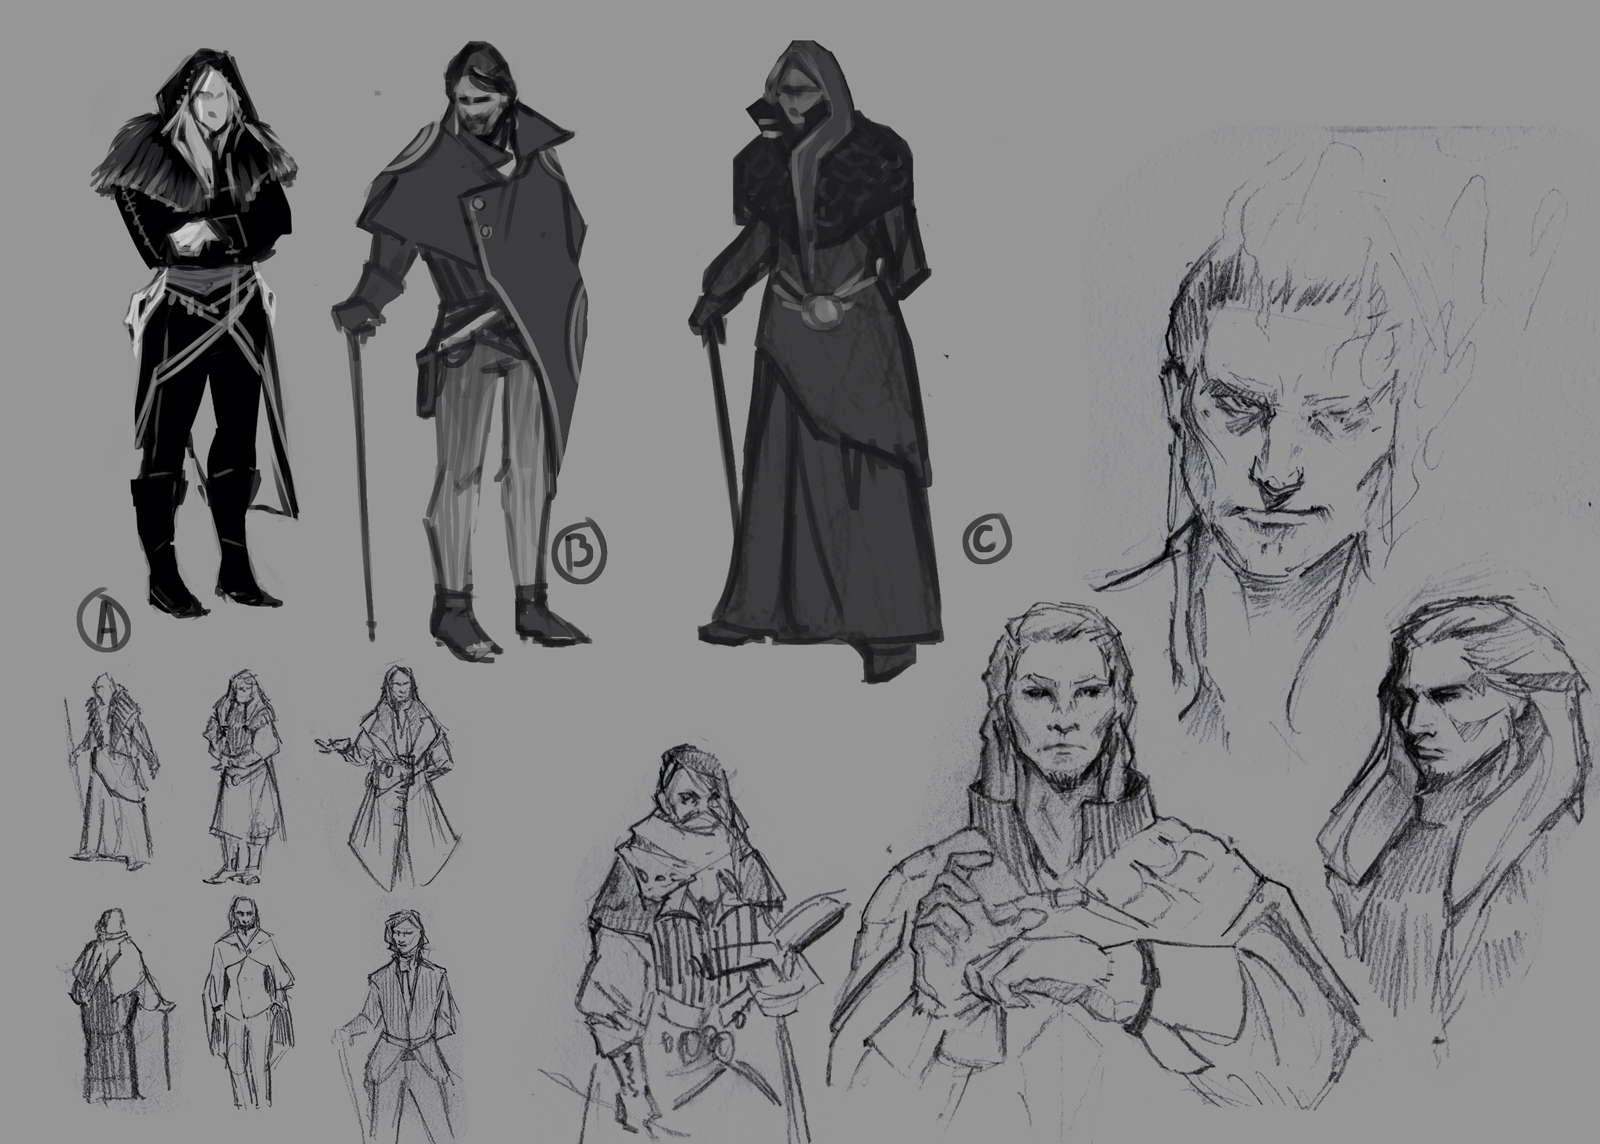 Yates sketches